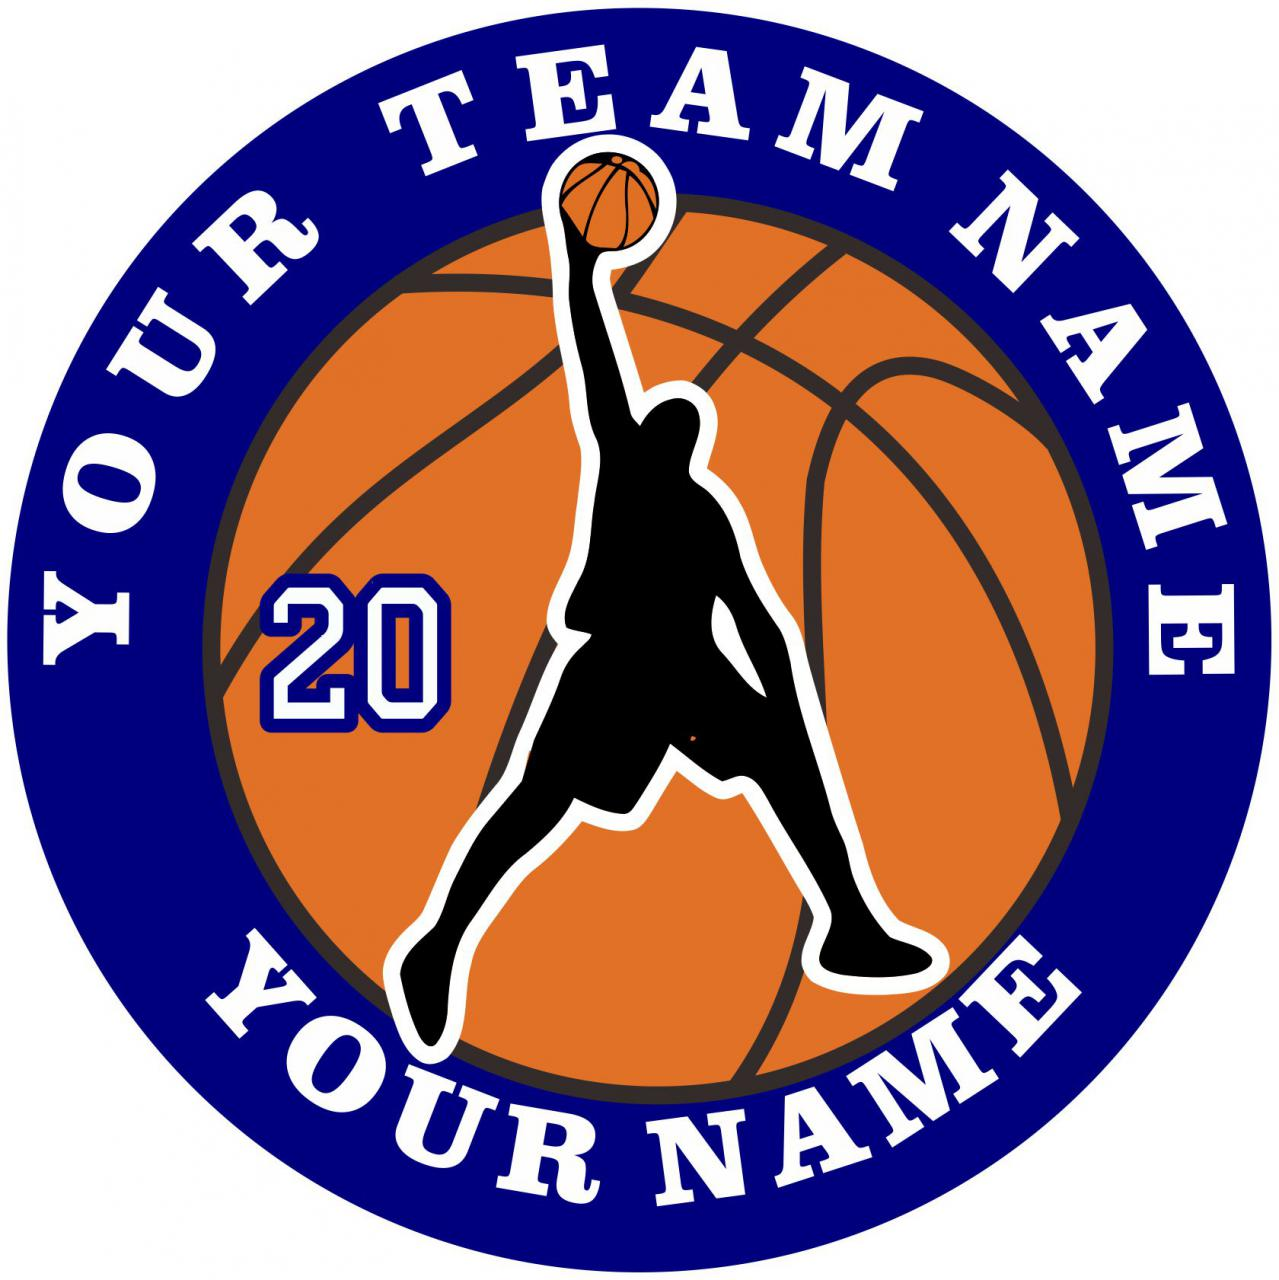 ... basketball logo the customized basketball logo is designed exactly as